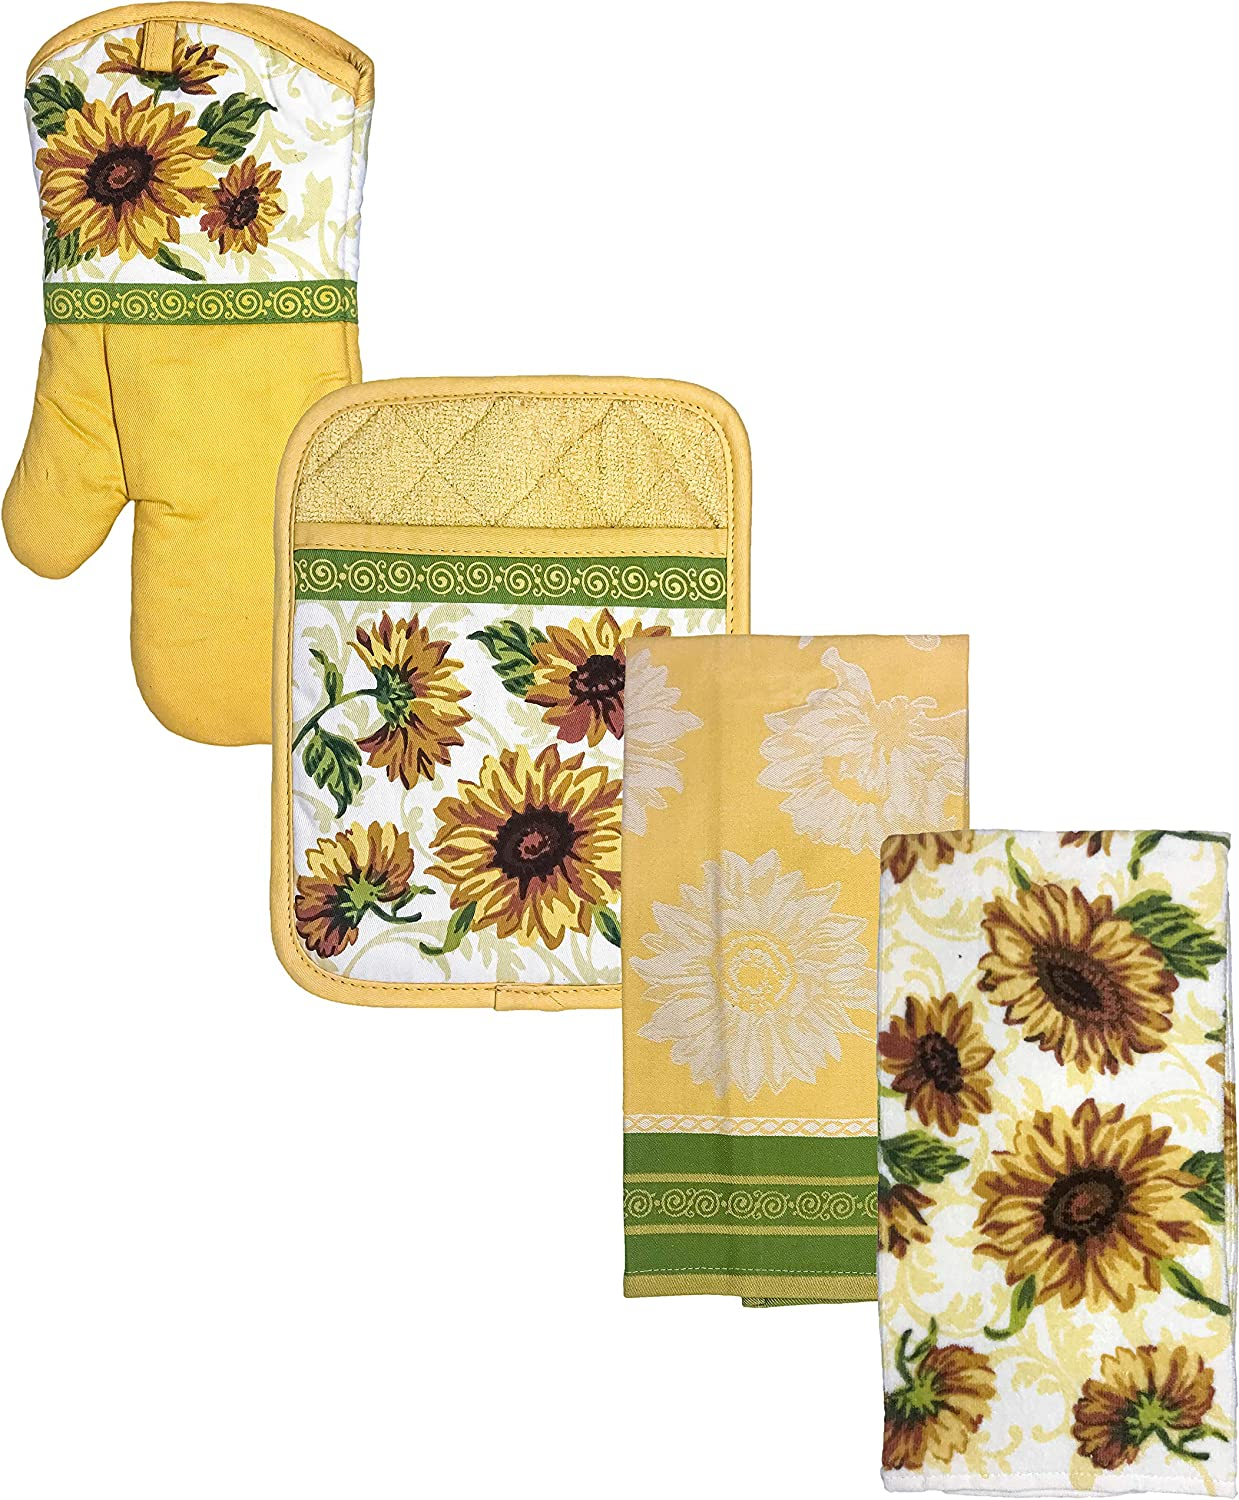 Better Homes & Gardens 4-Piece Sunflower Yellow Oven Mitt, 2 Kitchen Towels, and Pot Holder Set